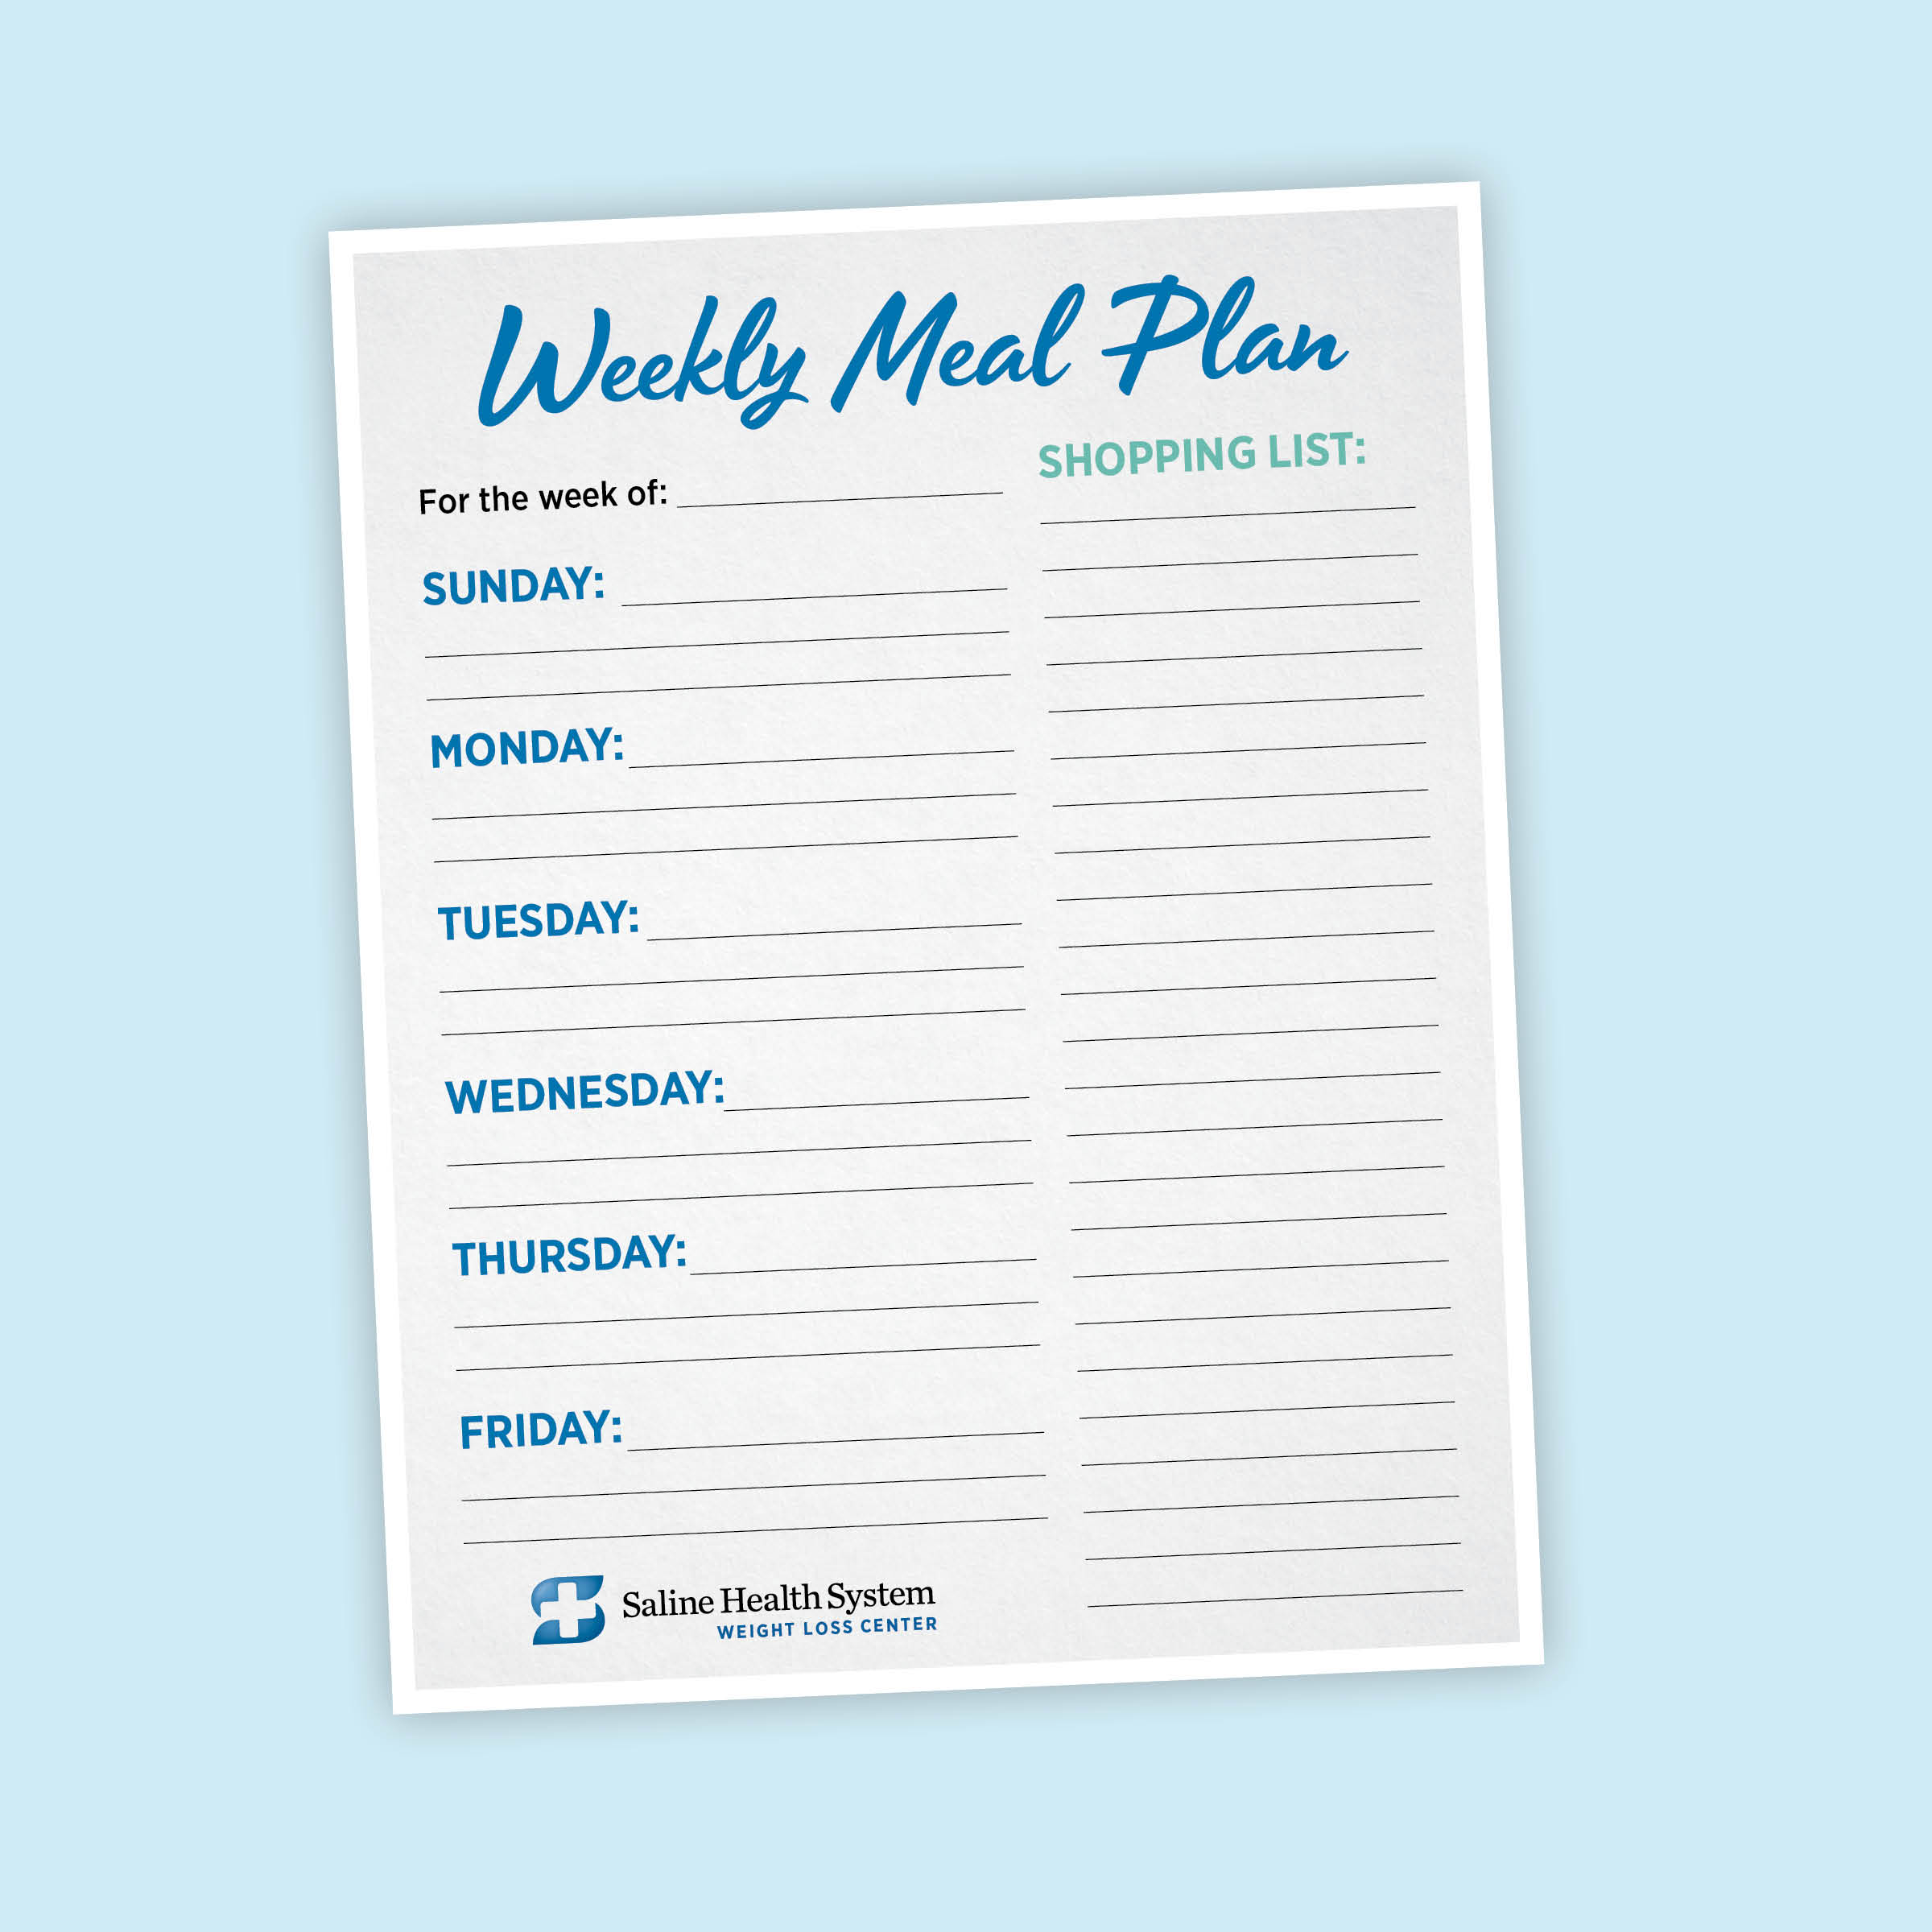 Weekly Meal Plan Website Graphic.jpg